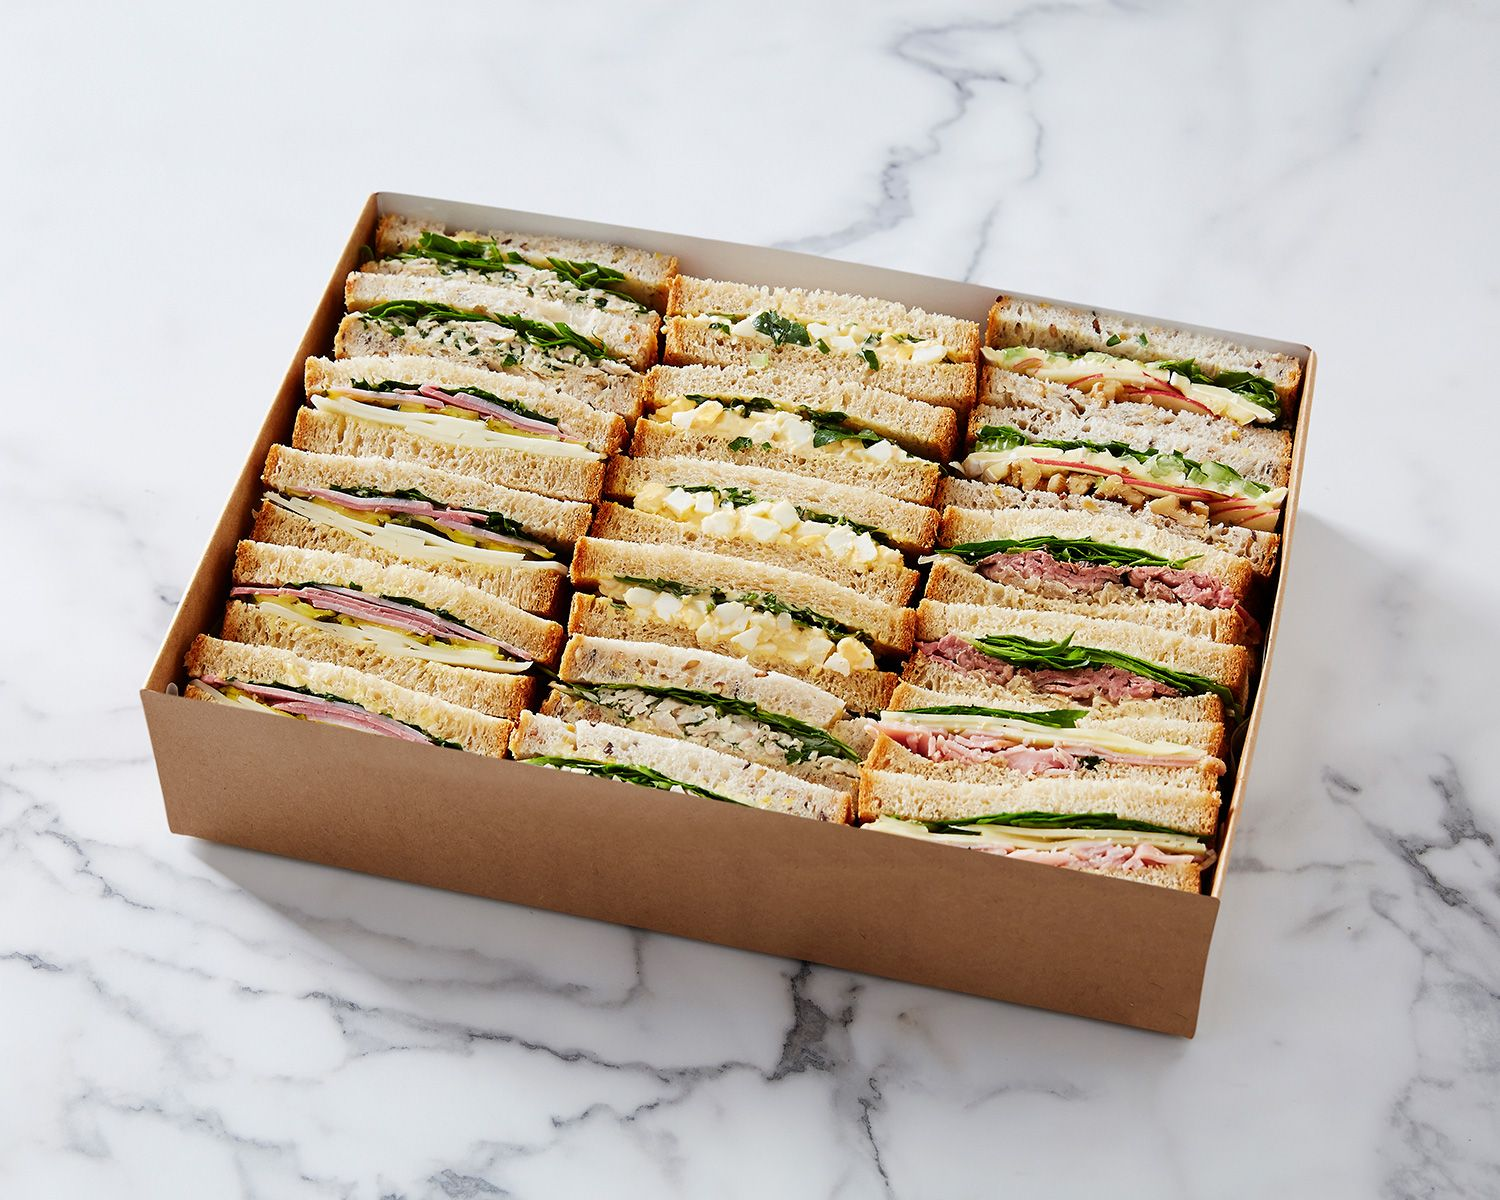 We provide delicious party food office sandwich delivery lunch we provide delicious party food office sandwich delivery lunch platters at affordable price in london and surrey call us today at 02089407529 forumfinder Gallery